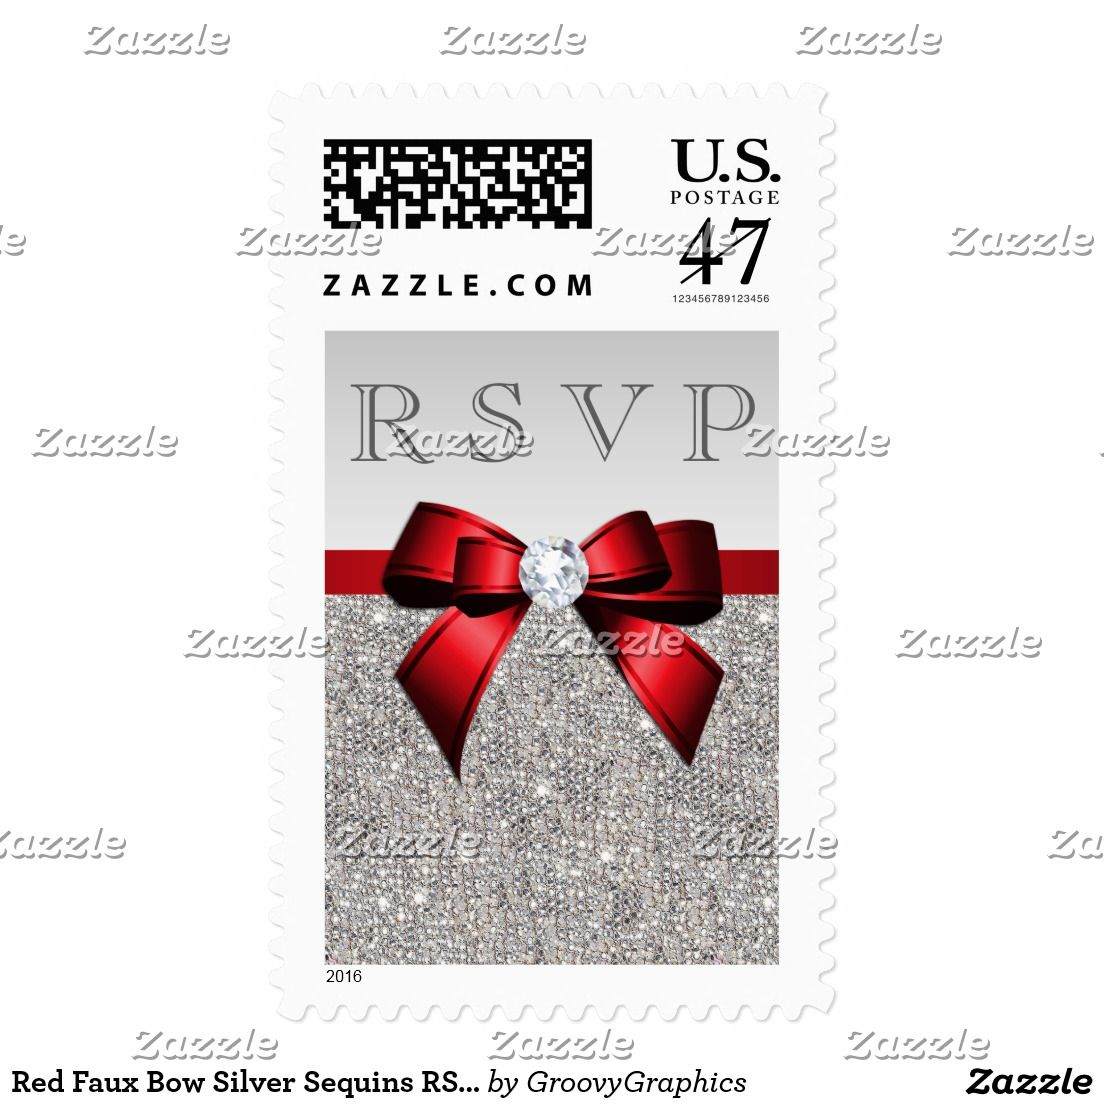 Red Faux Bow Silver Sequins RSVP Postage | wedding invitations ...